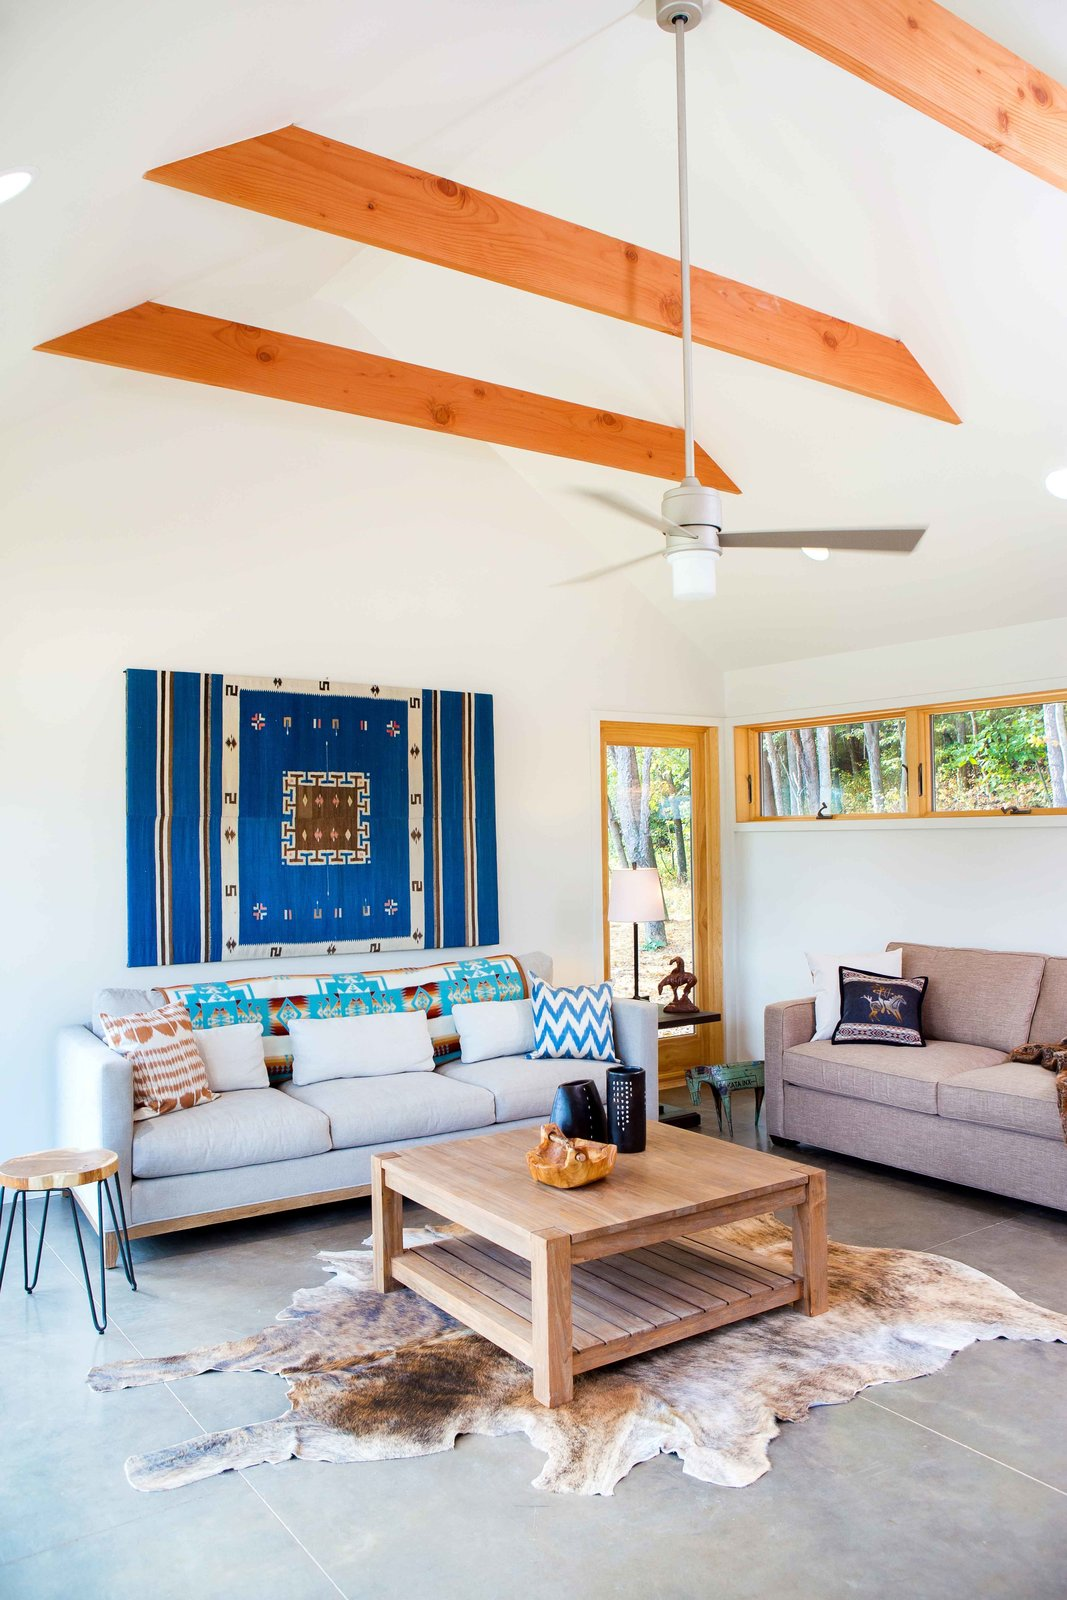 The bright ochres of the Douglas Fir beams and window framing accent the gray and white hues of the furniture, floors, and walls.  Habitats